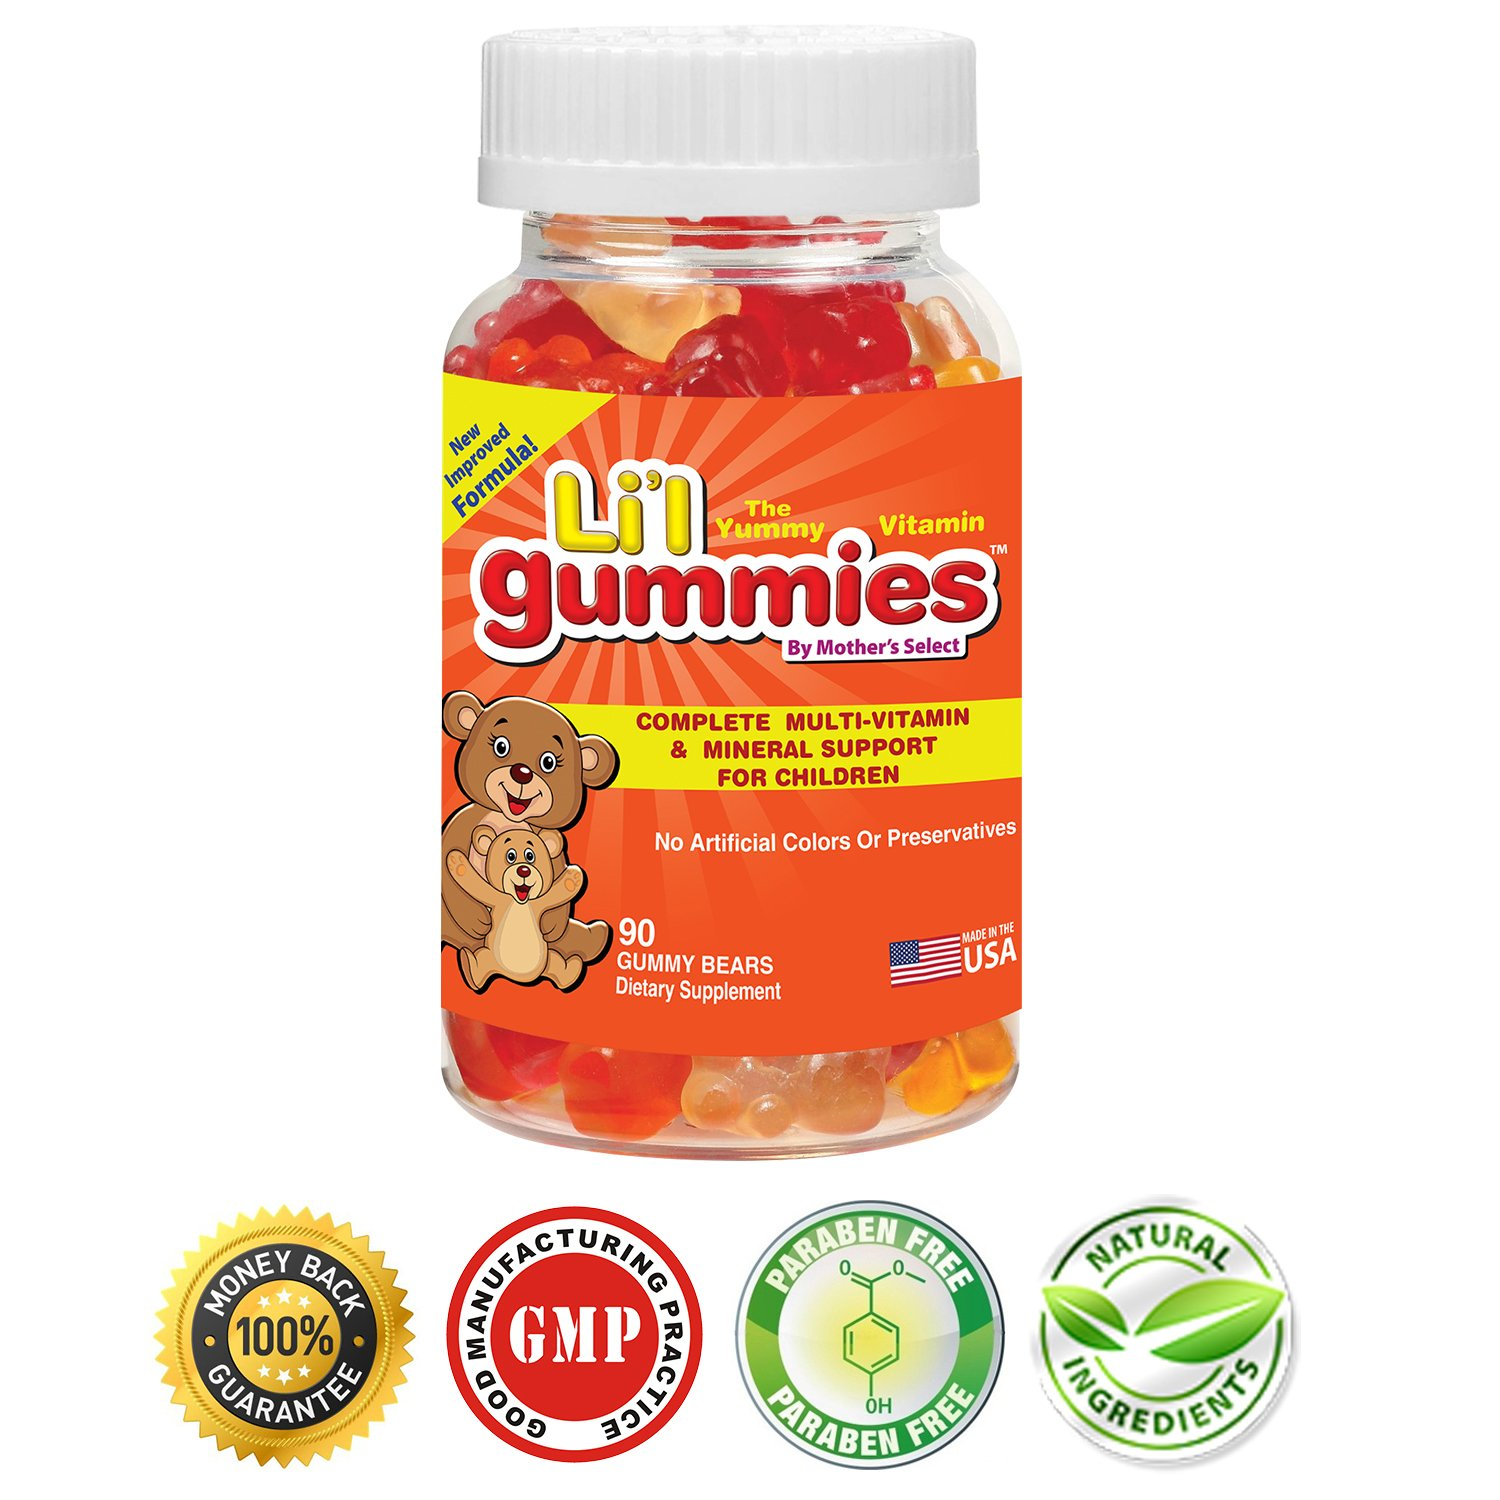 Mother's Select Li'l Gummies - Kids Complete MultiVitamin and Minerals Supplement - Supports Children Nutritional Needs Contain Vitamins A, C, D, E, B & More - Great Tasting Gummy Vitamins!